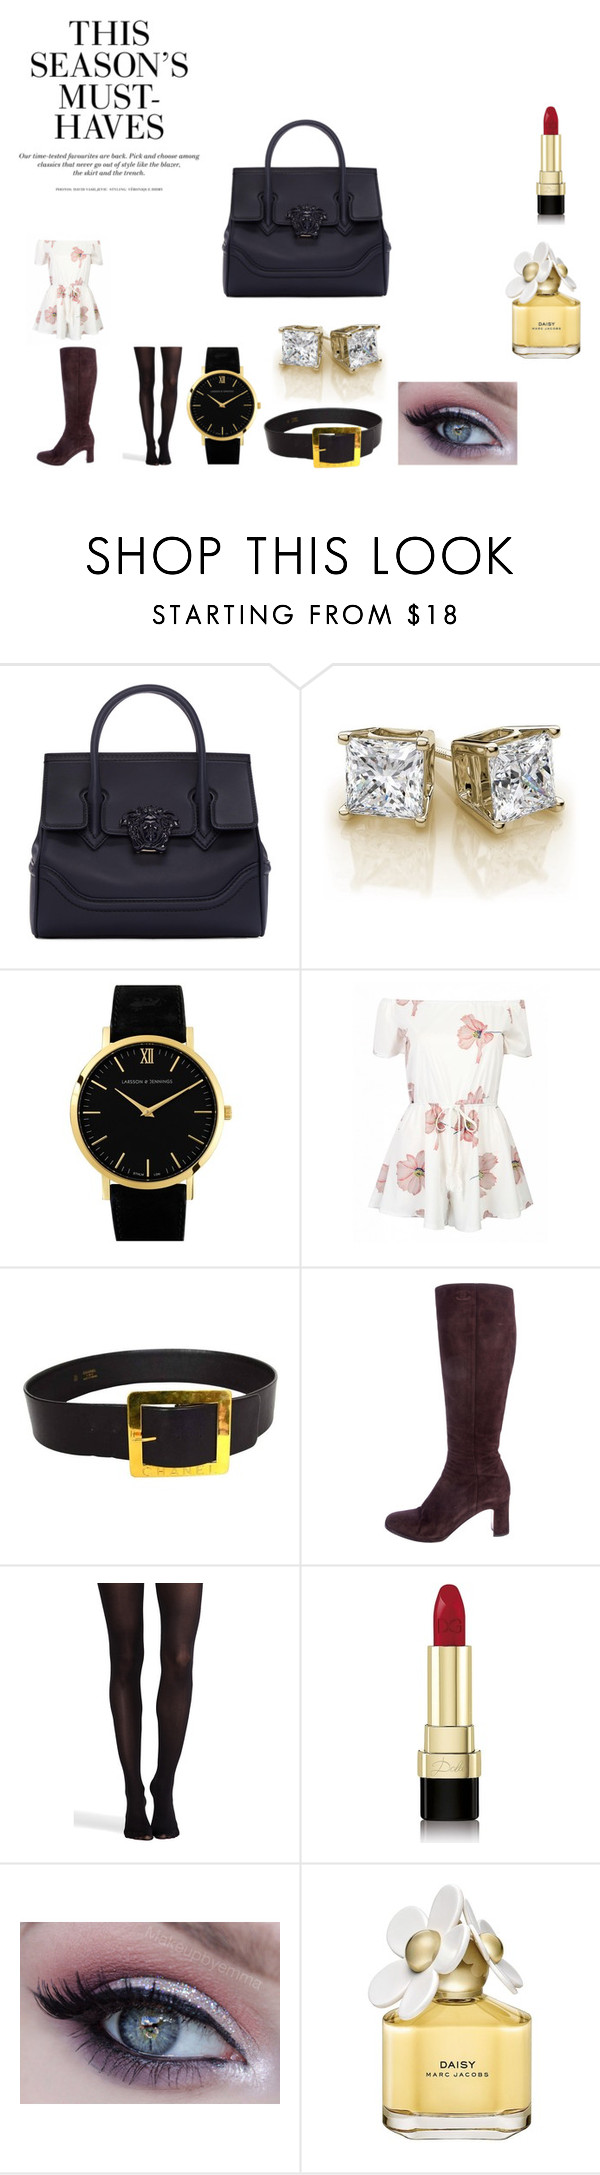 """""""28-versace"""" by chrisone ❤ liked on Polyvore featuring Versace, Larsson & Jennings, Chanel, SPANX, Dolce&Gabbana, Marc Jacobs and H&M"""